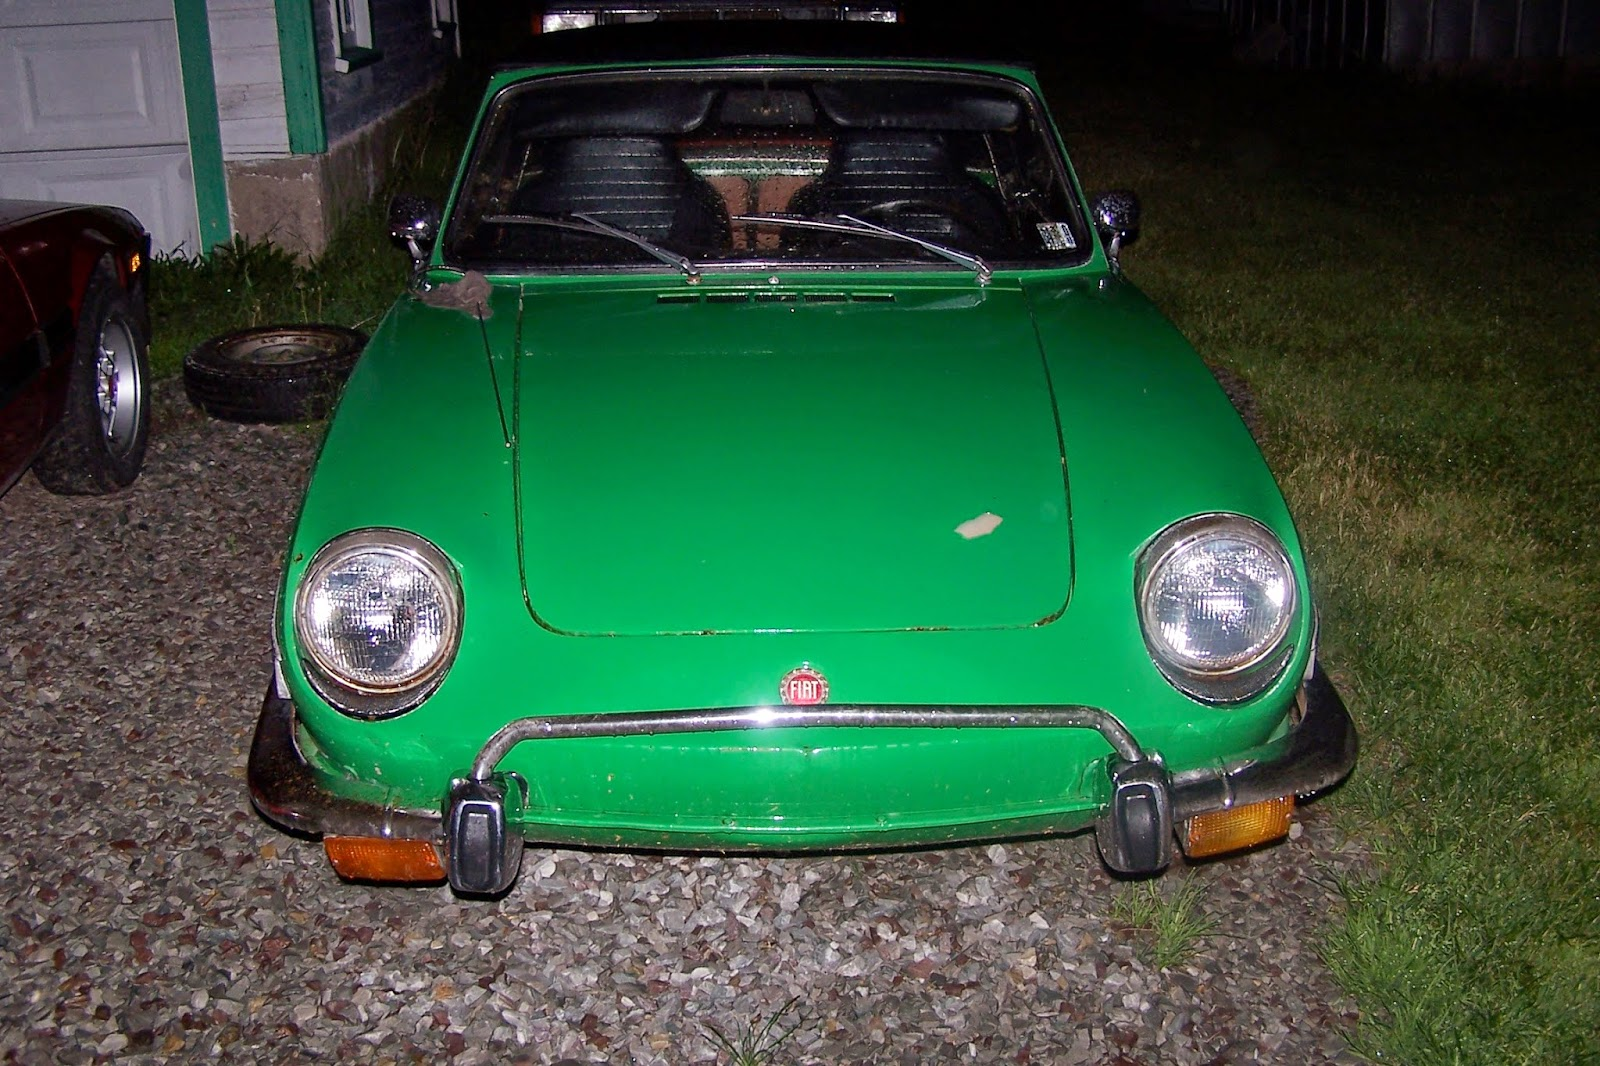 medium resolution of i m a single guy out on my own with a few bucks in his pocket and i happened upon a cute little 1973 fiat 850 spider